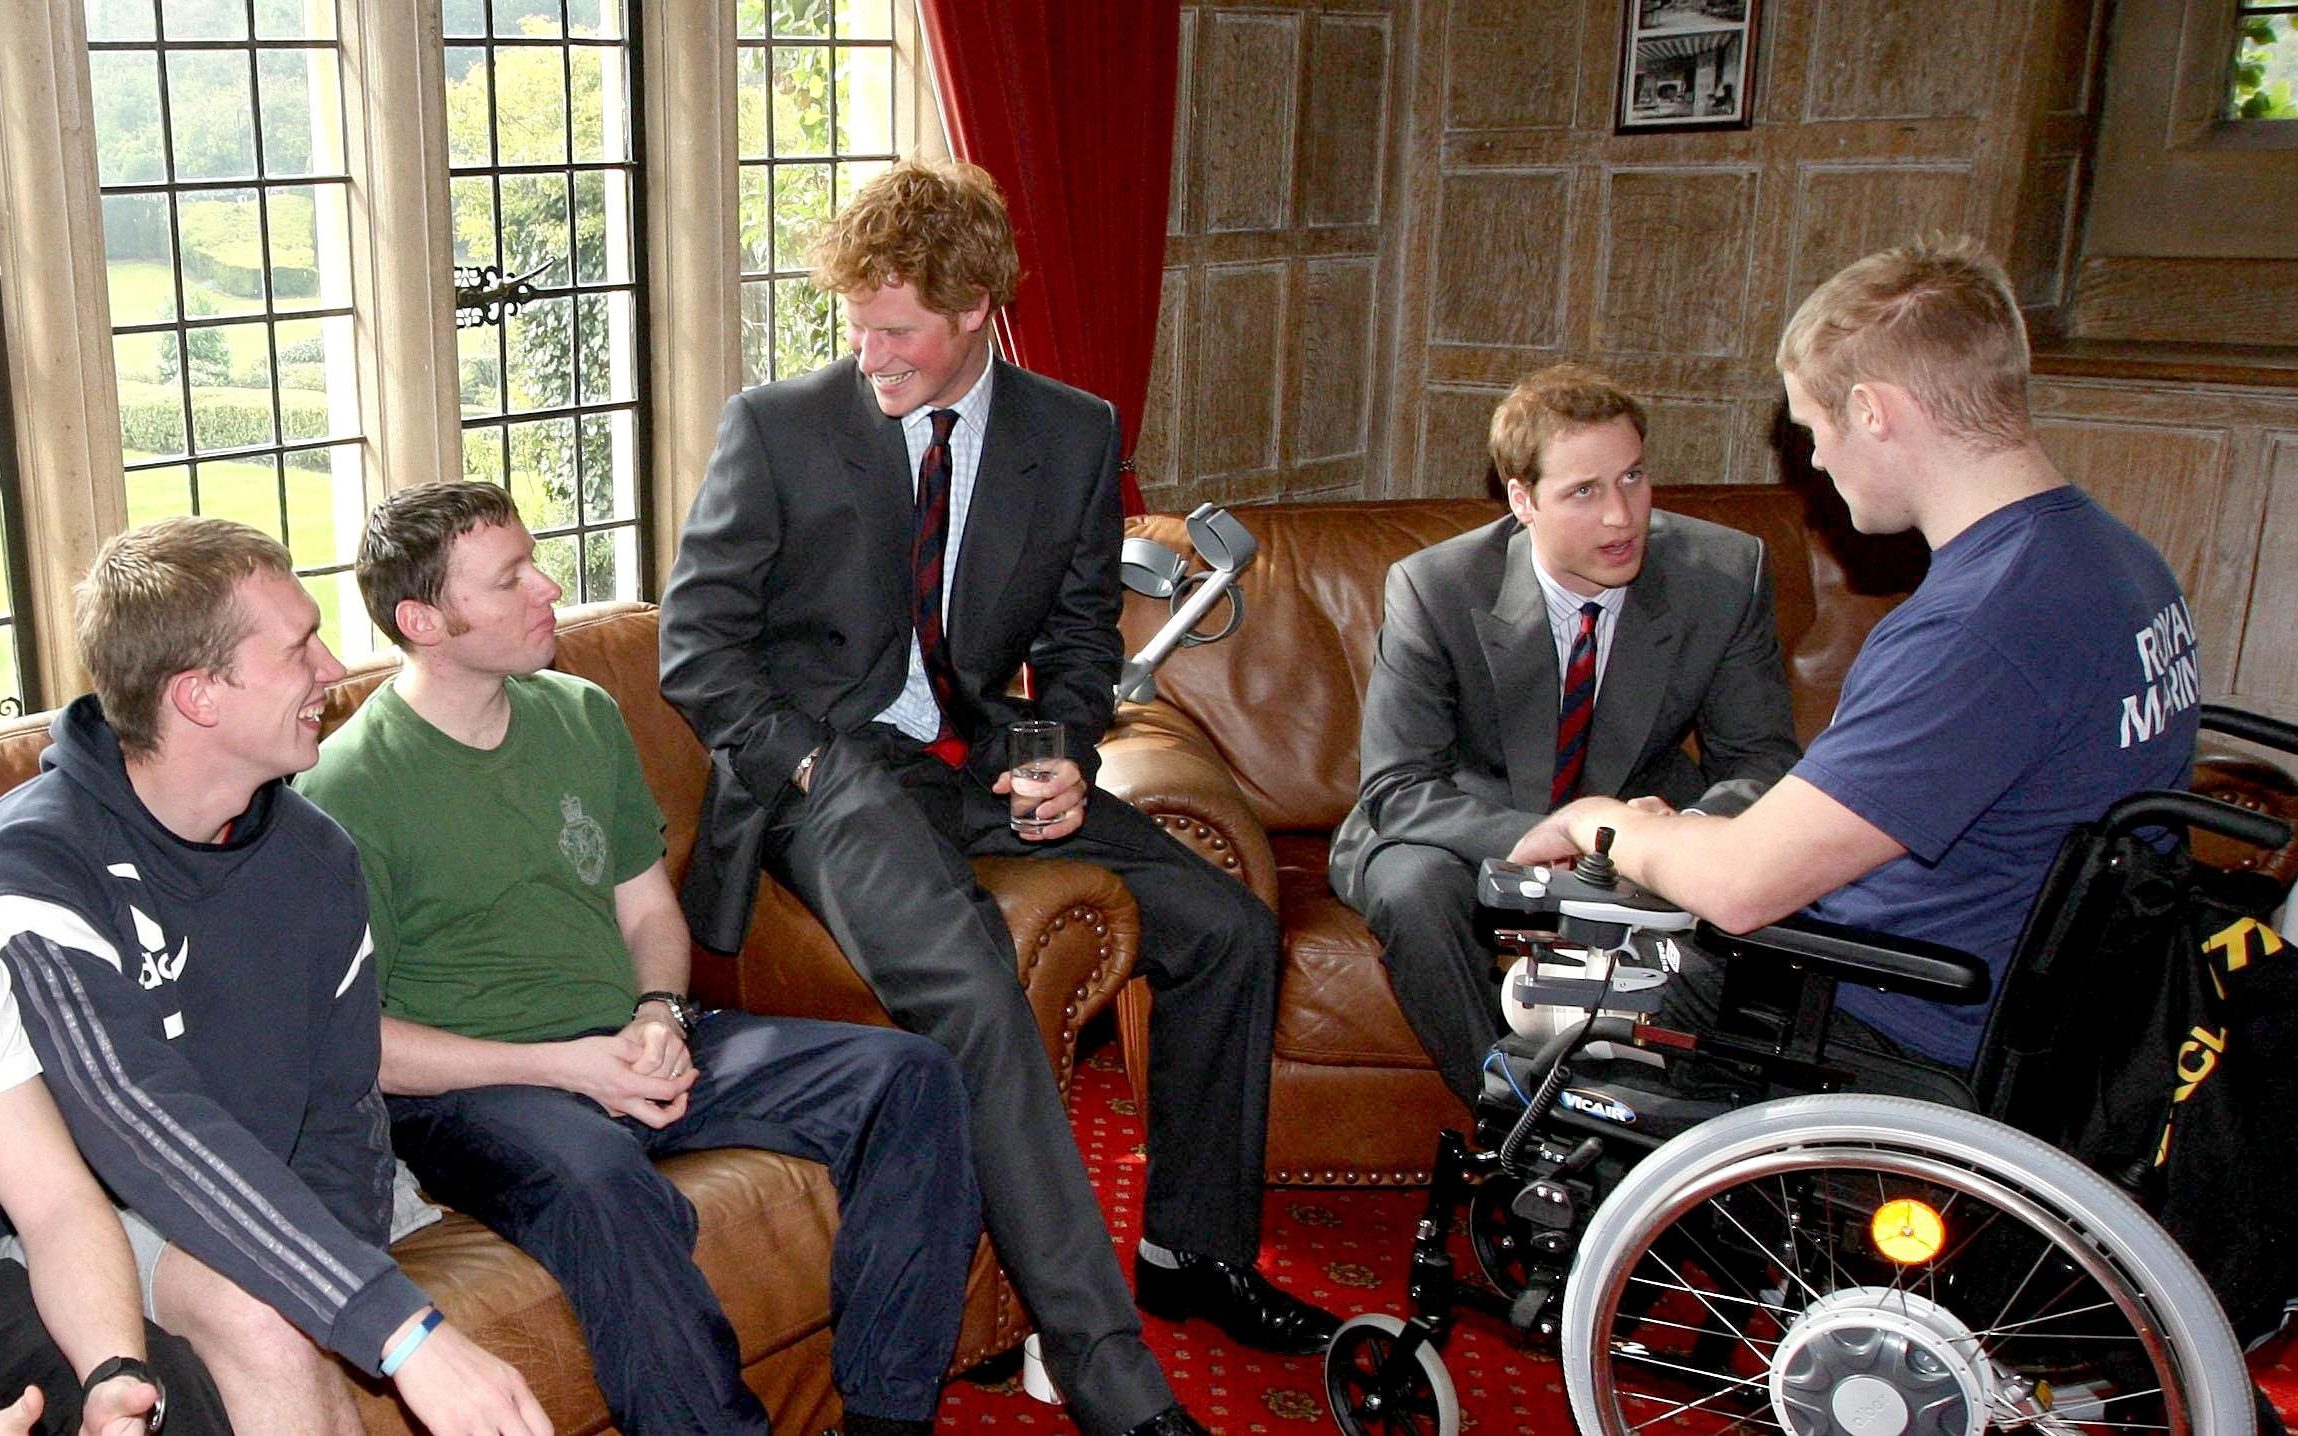 Prince Harry and Prince William visit Headley Court in 2008